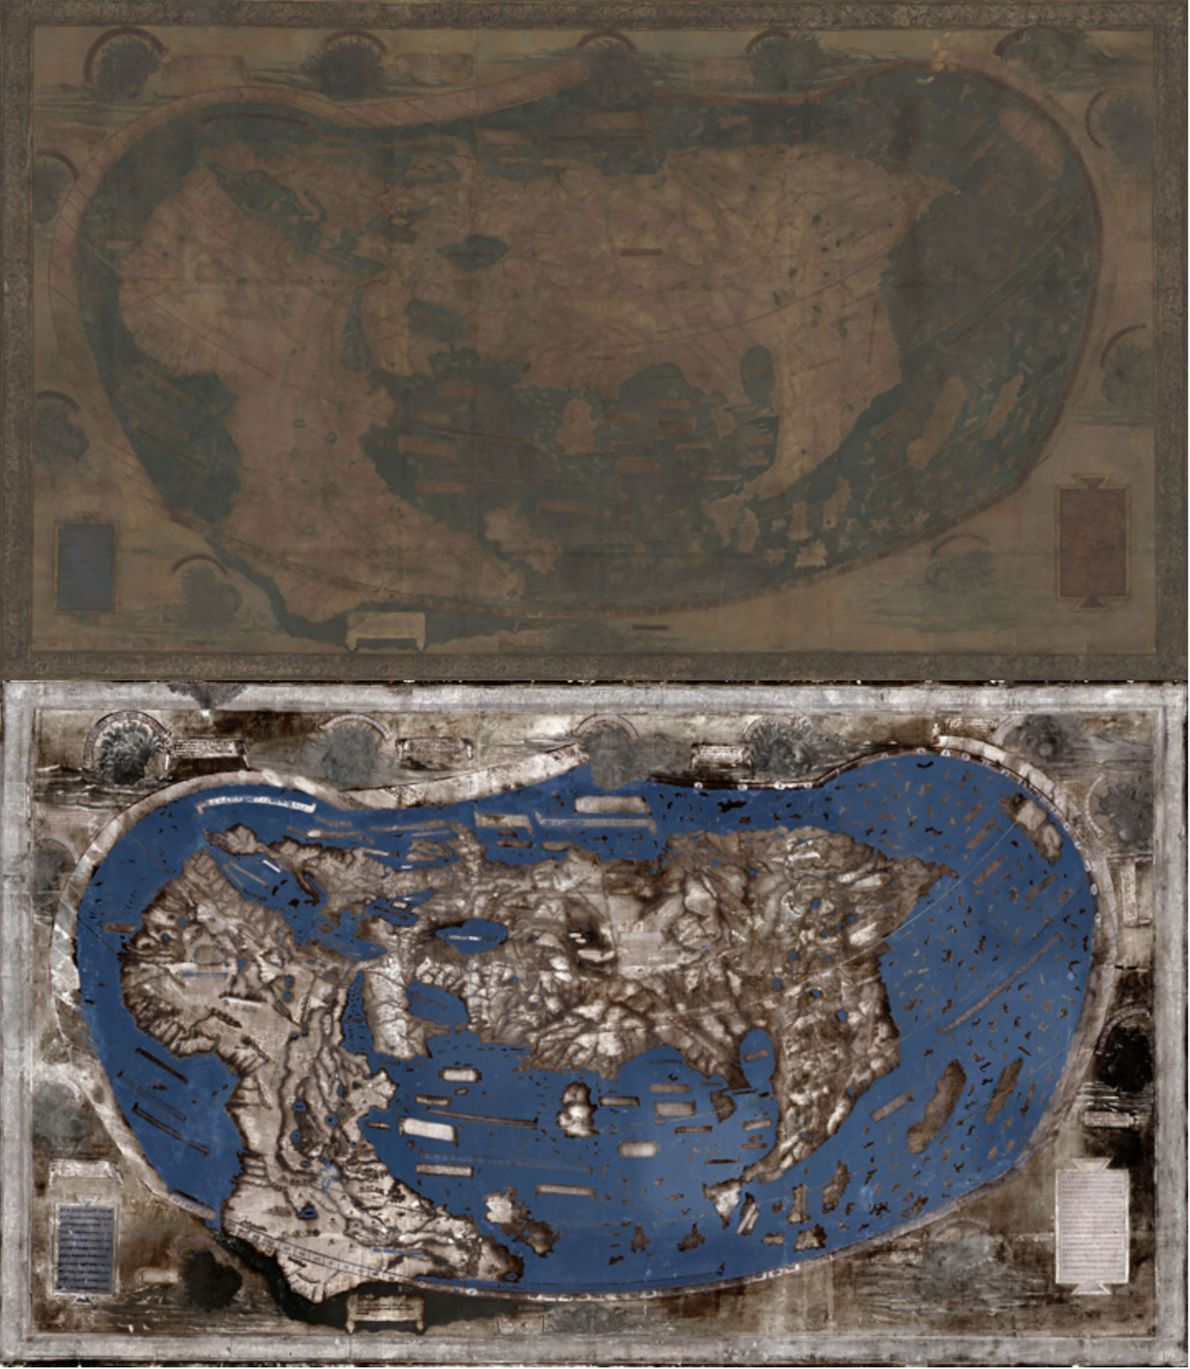 Much of the text on the 1491 map by Martellus map had faded to the point ...